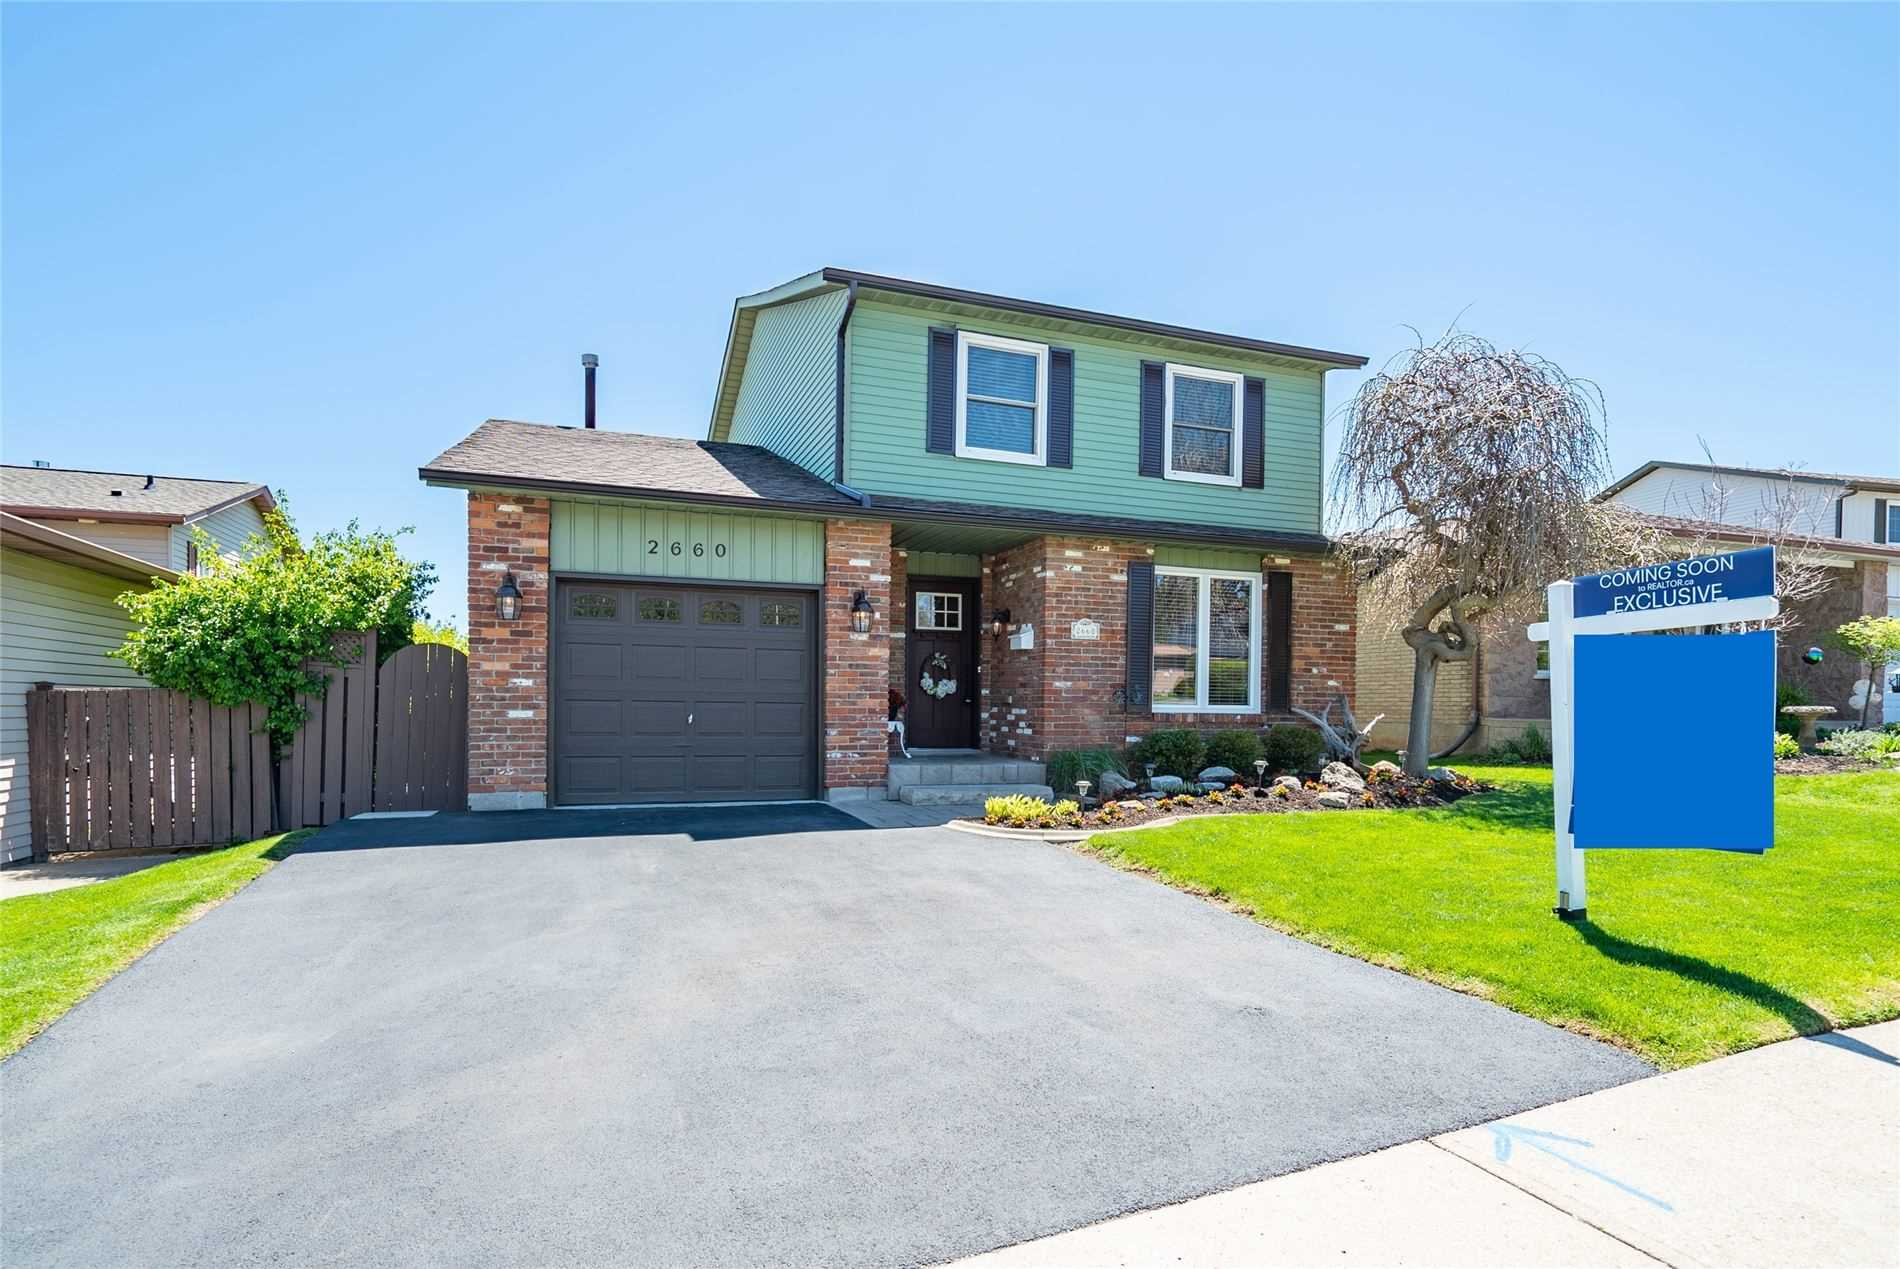 2660 Cavendish Dr, Burlington, L7P3X9, 3 Bedrooms Bedrooms, ,2 BathroomsBathrooms,Detached,For Sale,Cavendish,W4768096